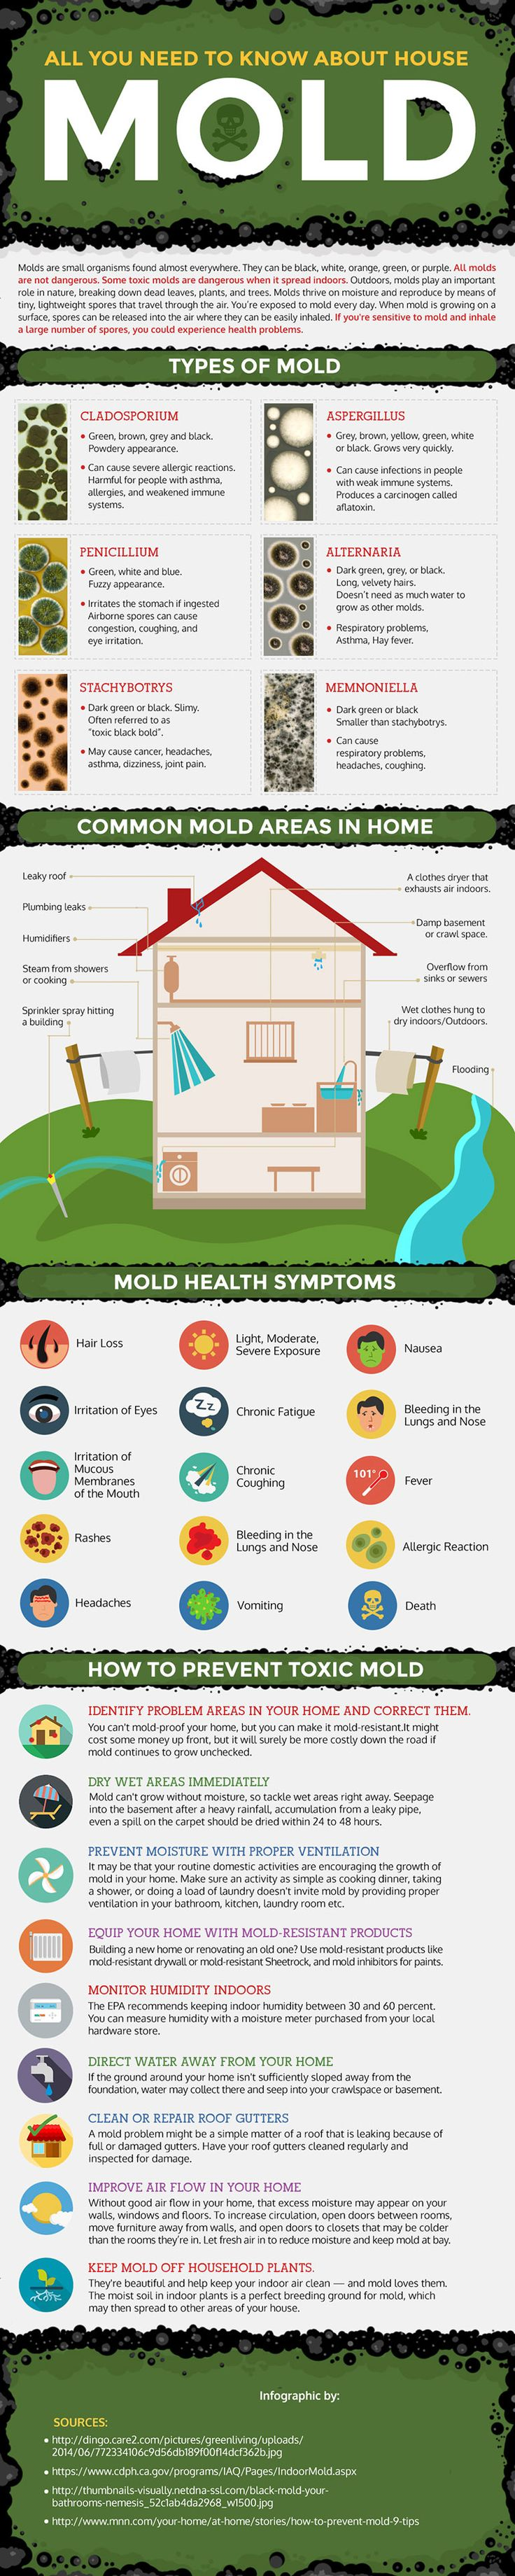 How to clean mold off walls - 17 Best Ideas About Cleaning Mold On Pinterest Mold In Bathroom Remove Mold And Mildew Remover